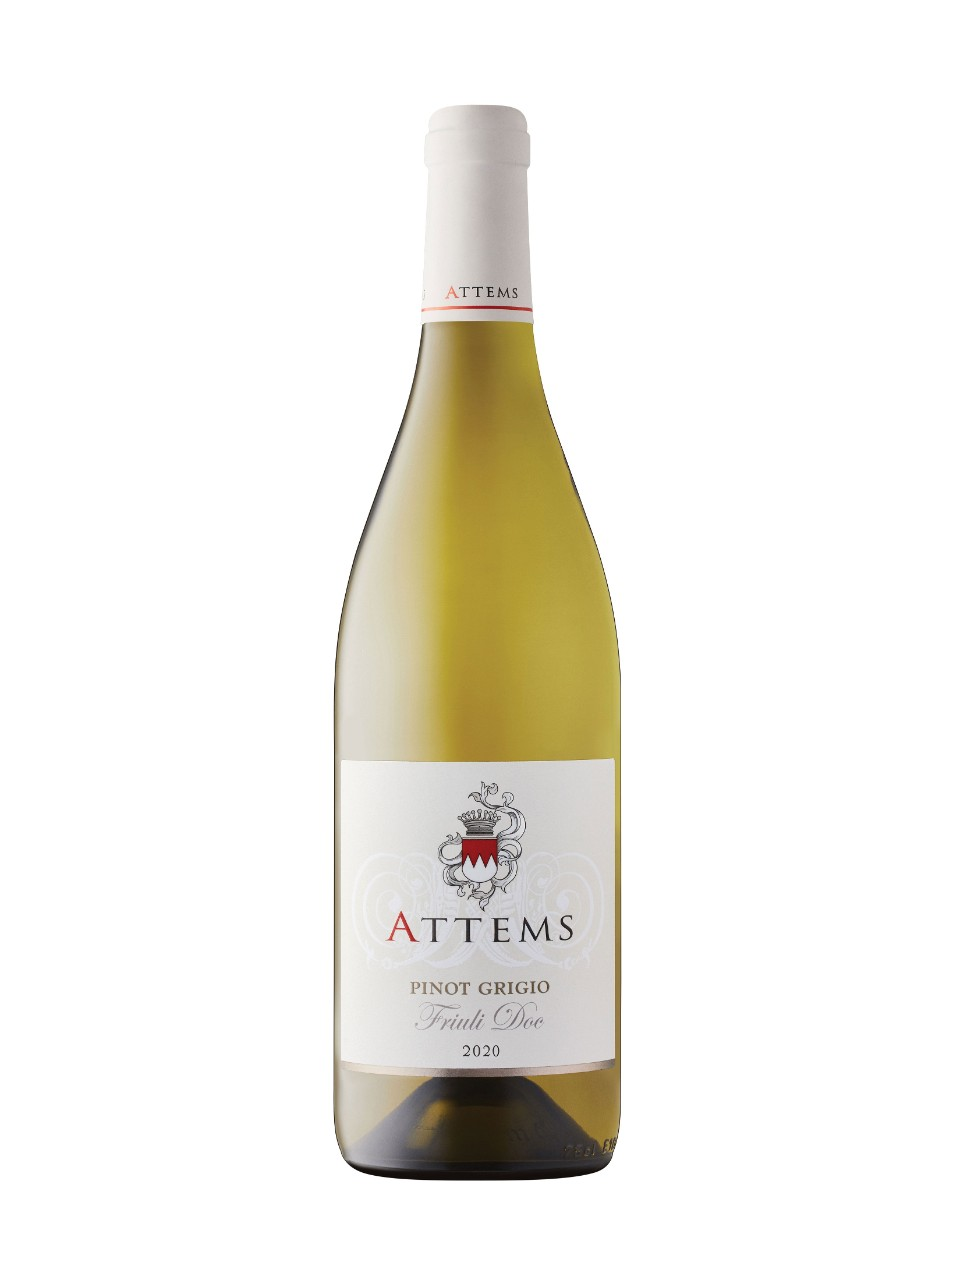 Attems Pinot Grigio 2019 from LCBO